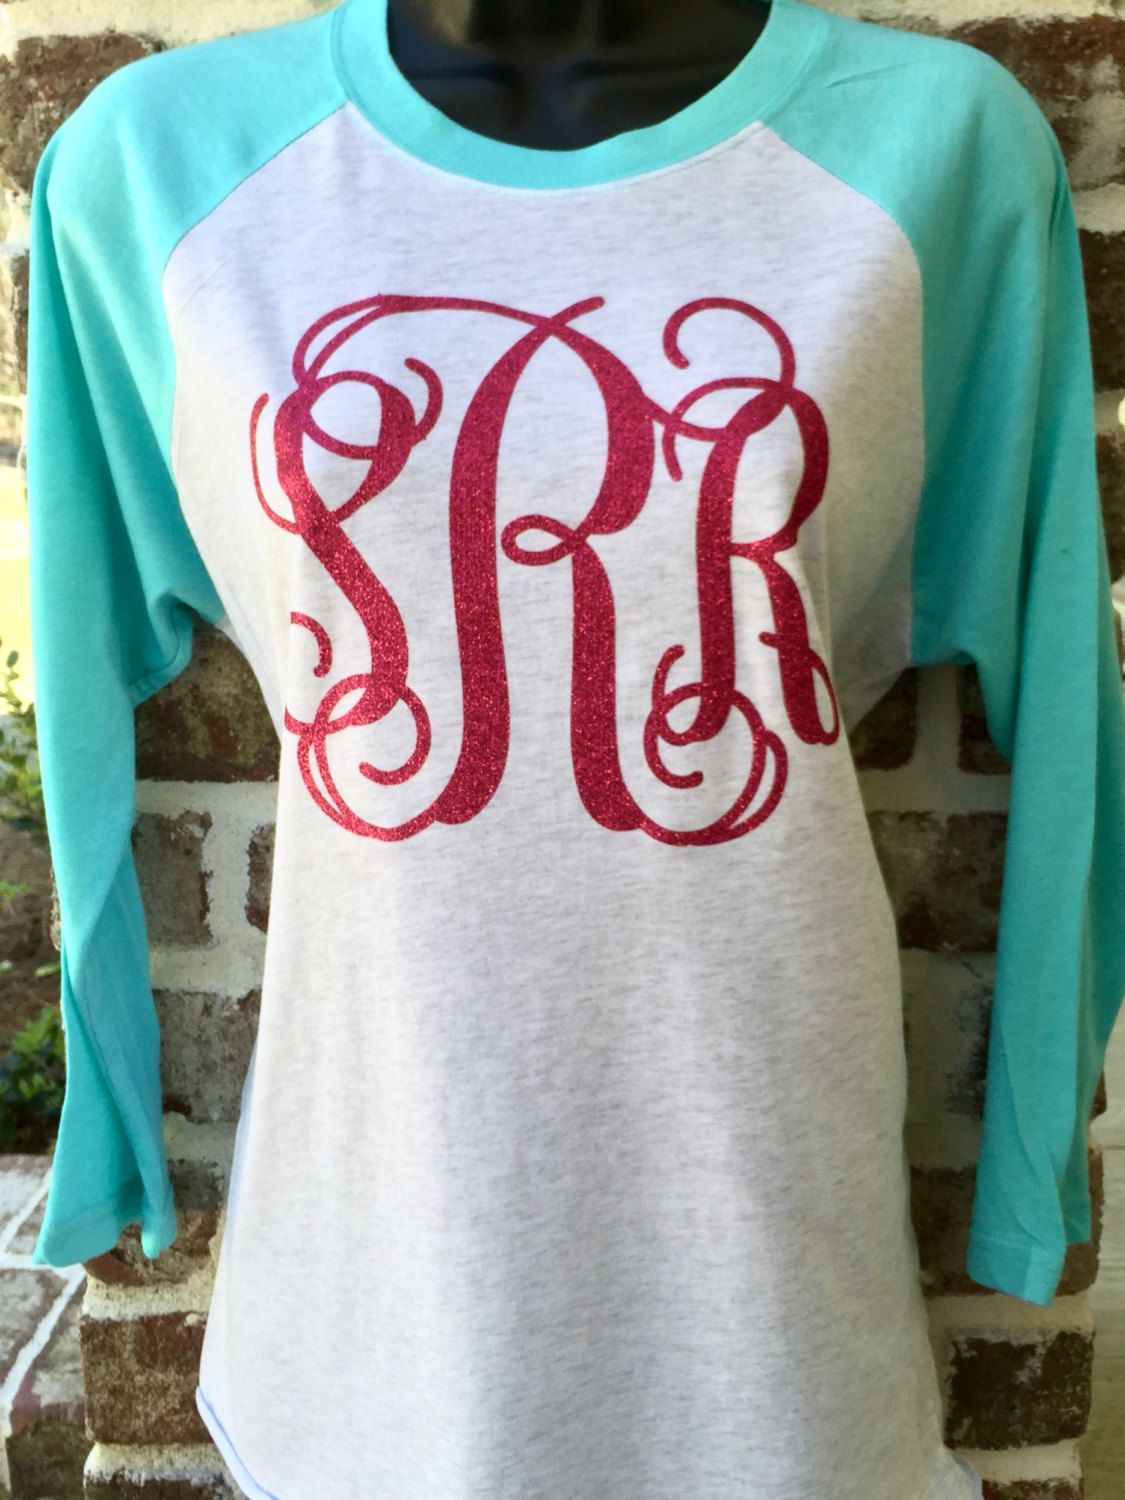 137364d80 Monogram Raglan Tee Shirt, Monogrammed Raglan Shirt, Monogram Baseball T  shirt, Women's Monogrammed Three Quarter Sleeve T shirt by  PoshPrincessBows1 on ...